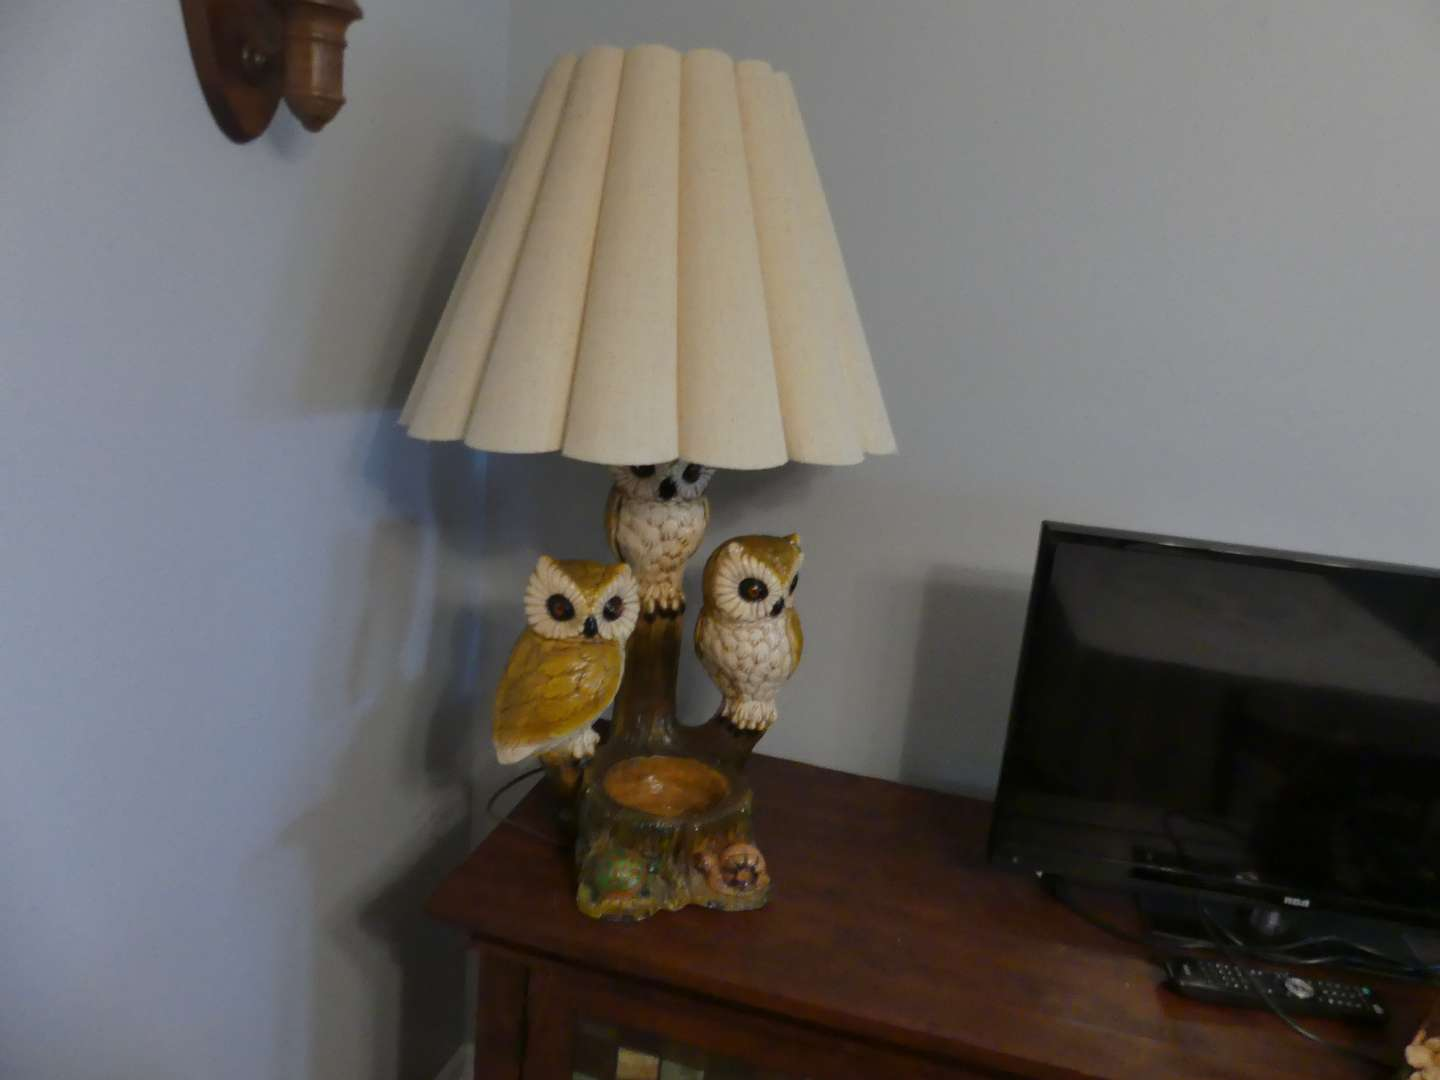 Lot #13 Vintage 50's-60's Chalkware Table Lamp/Planter with 3 Owls